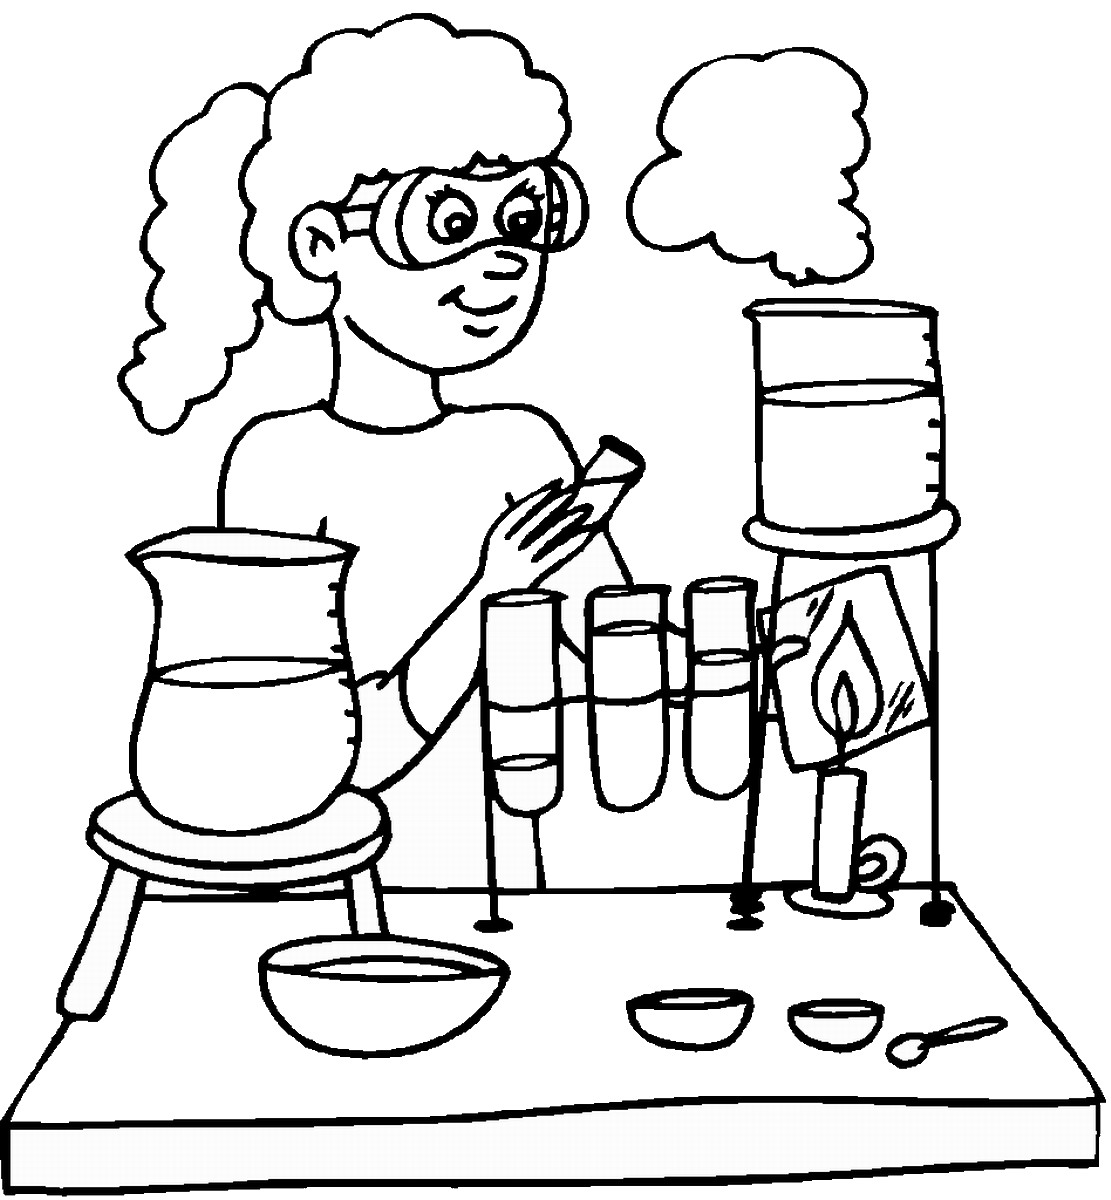 science printable coloring pages kids in science class coloring page printable coloring science pages printable